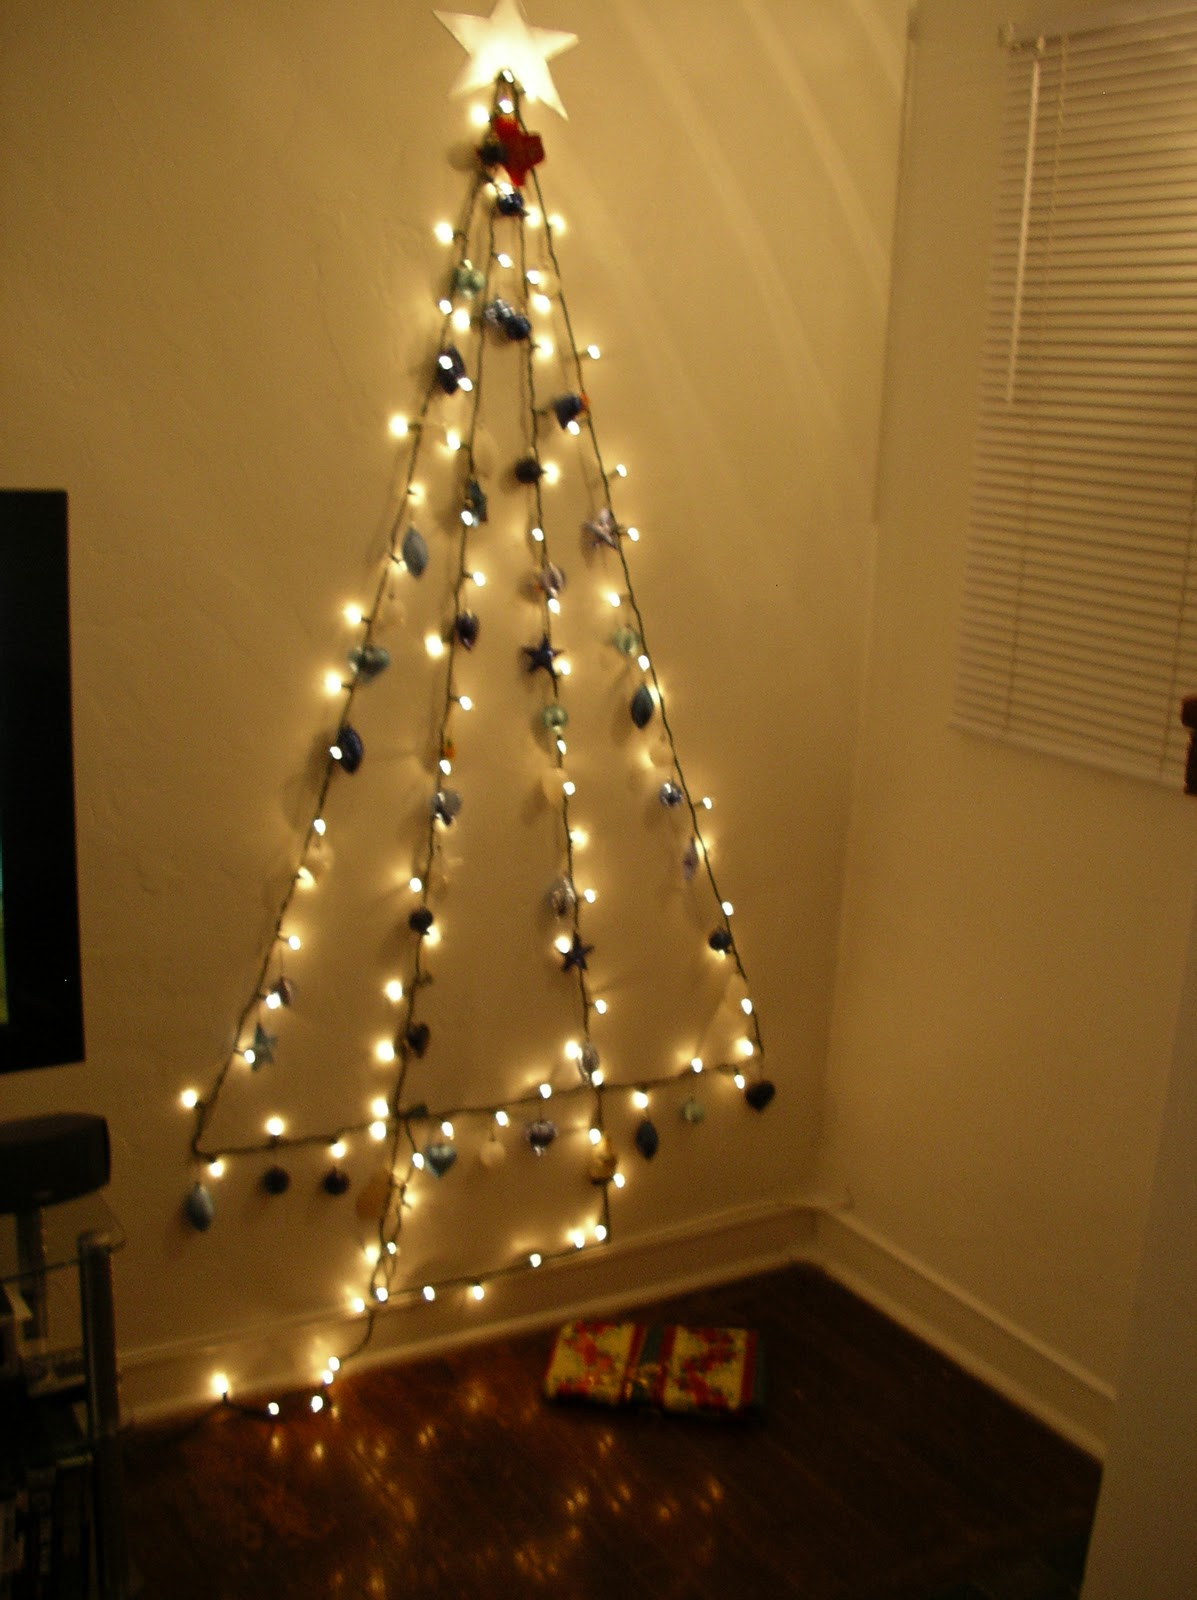 Lights For Wall Decor : Wall tree lights adding decor and lighting to your home